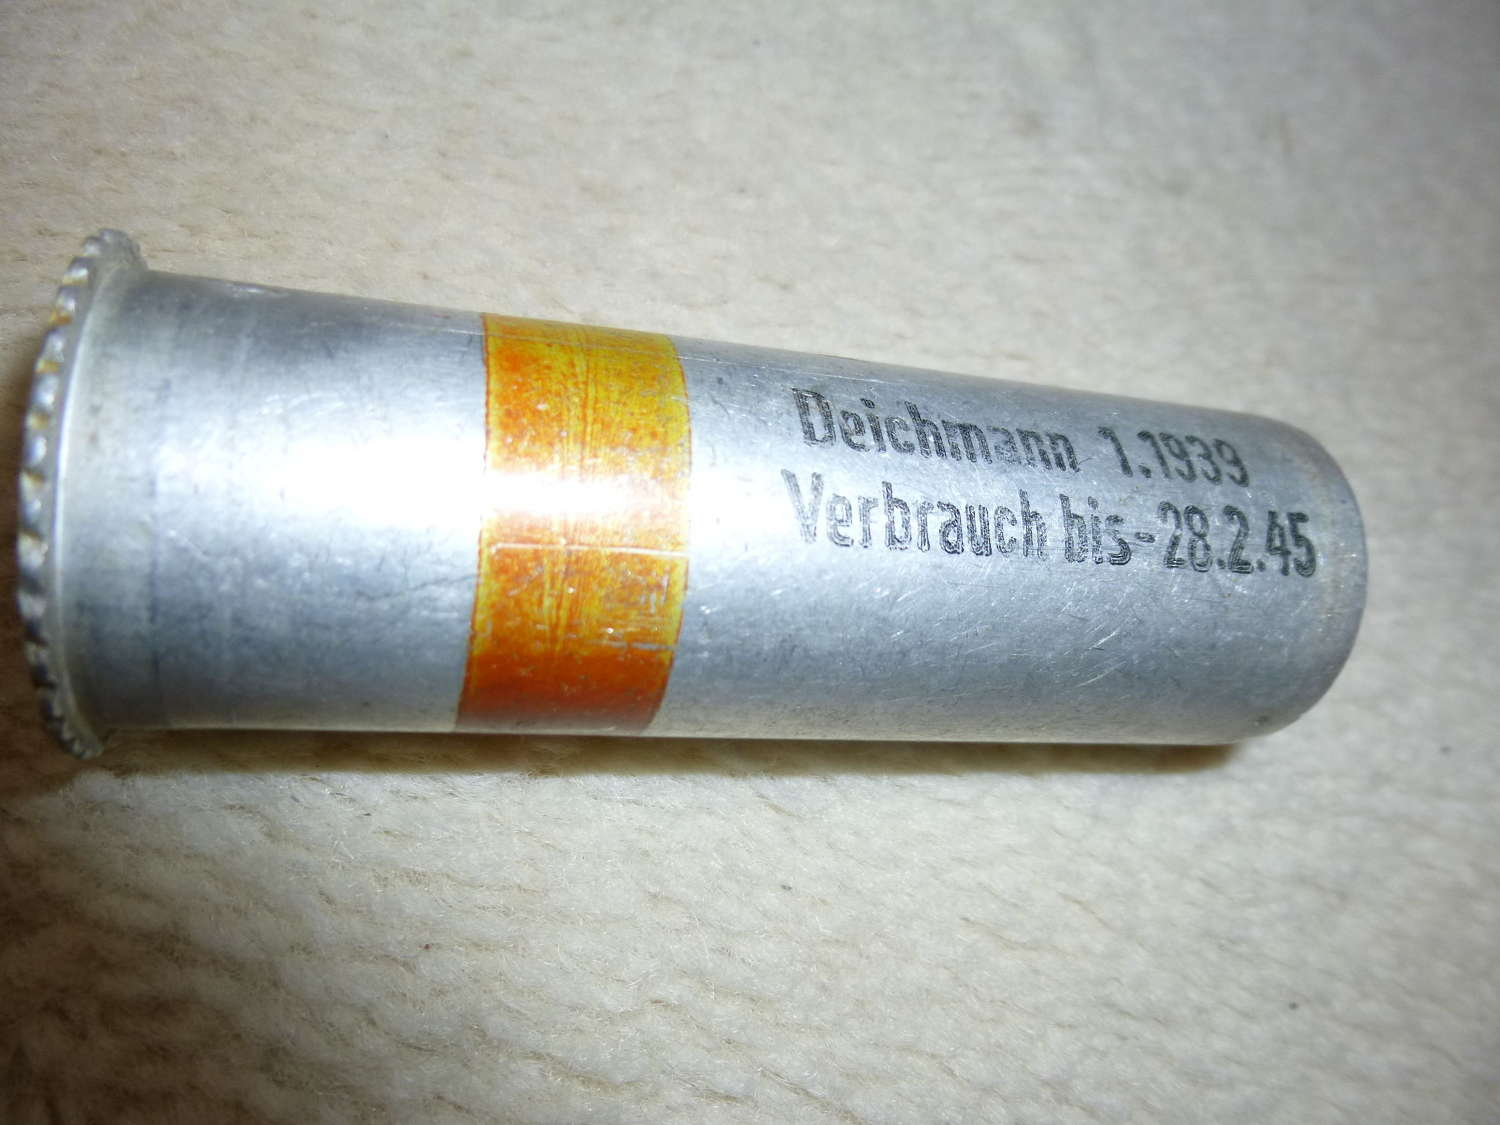 German Wehrmacht/Luftwaffe flare pistol cartridge red